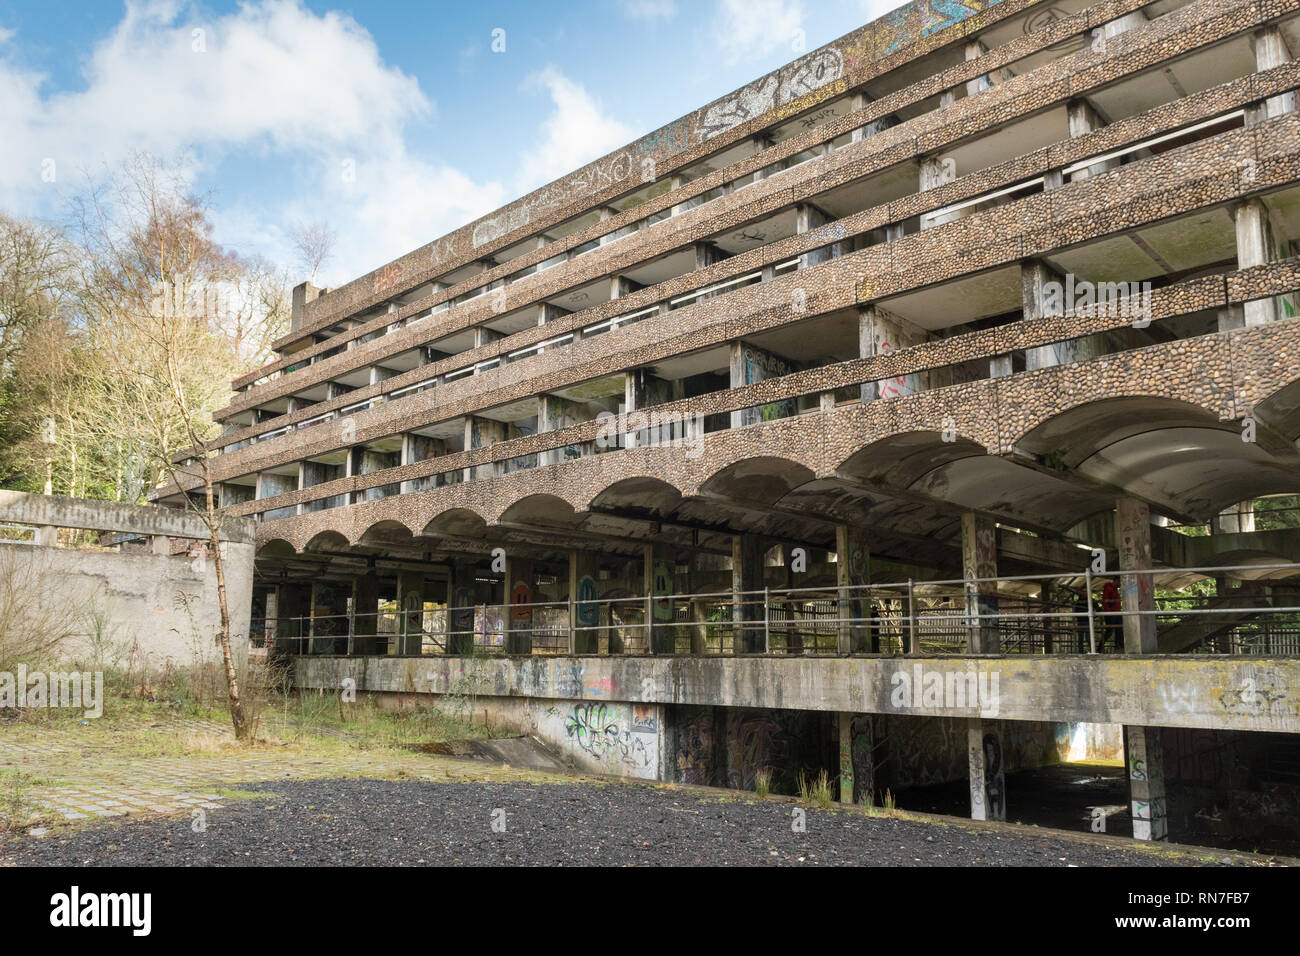 St Peter's Seminary in 2019 - a derelict A listed brutalist style building and former priest's training centre in Cardross, Argyll and Bute, Scotland - Stock Image